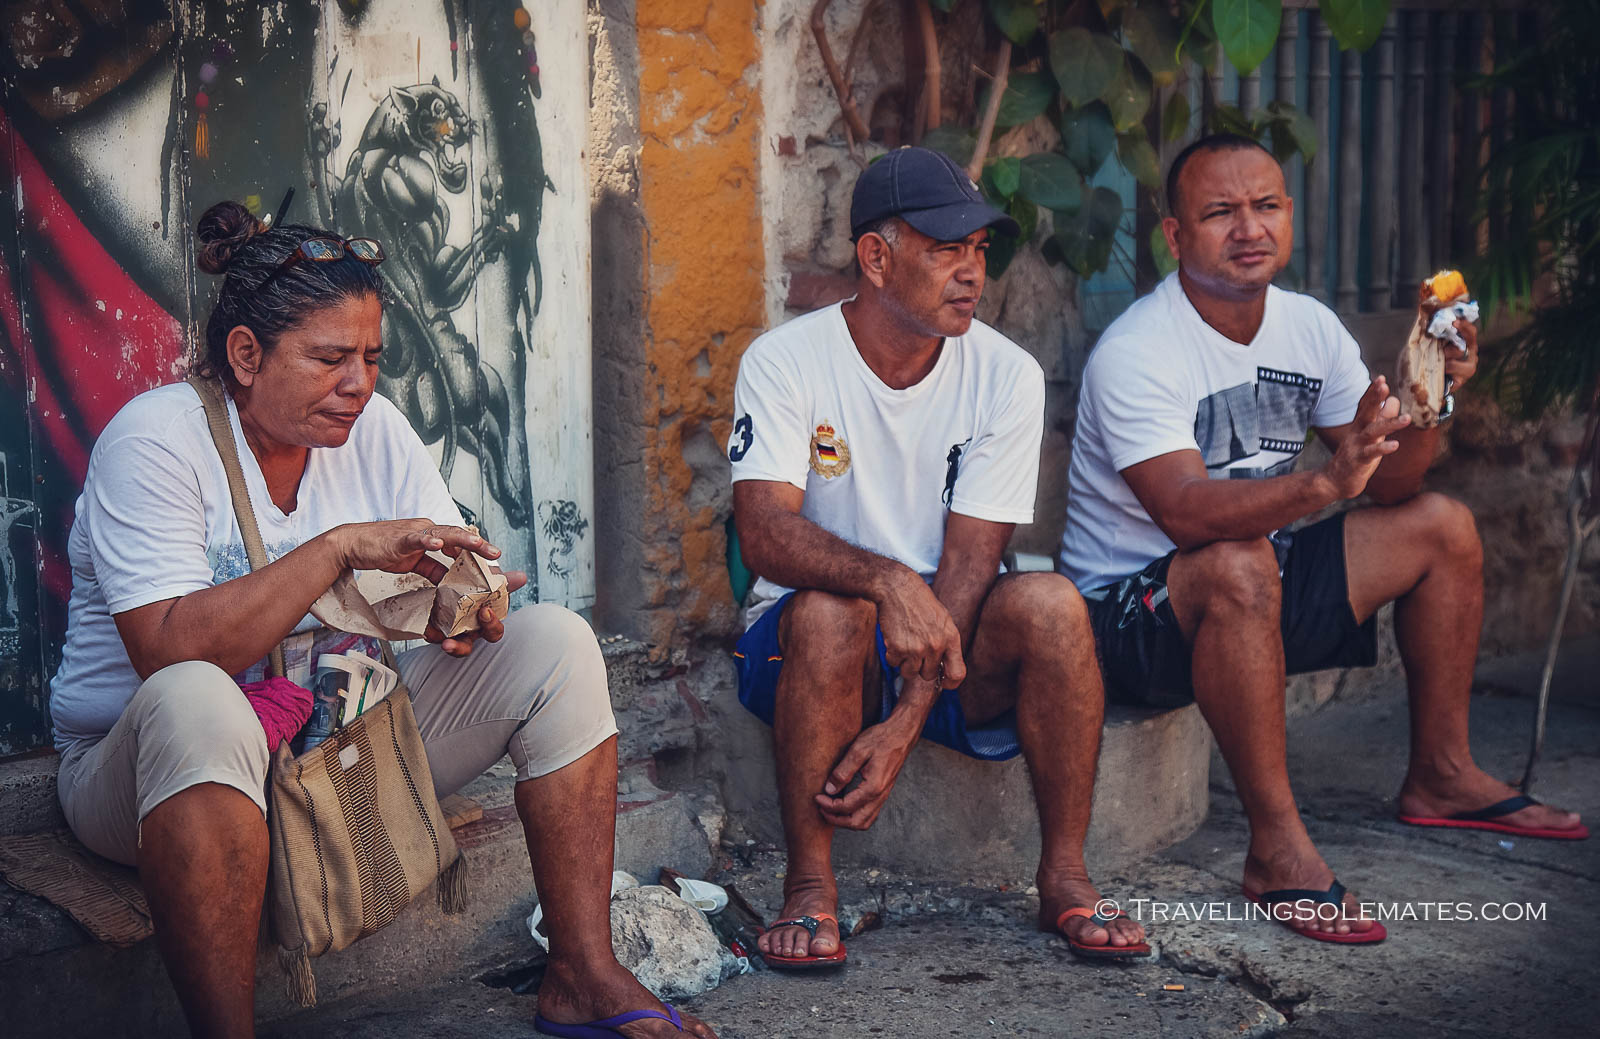 Locals on the street of Getsemani, Cartagena, Colombia